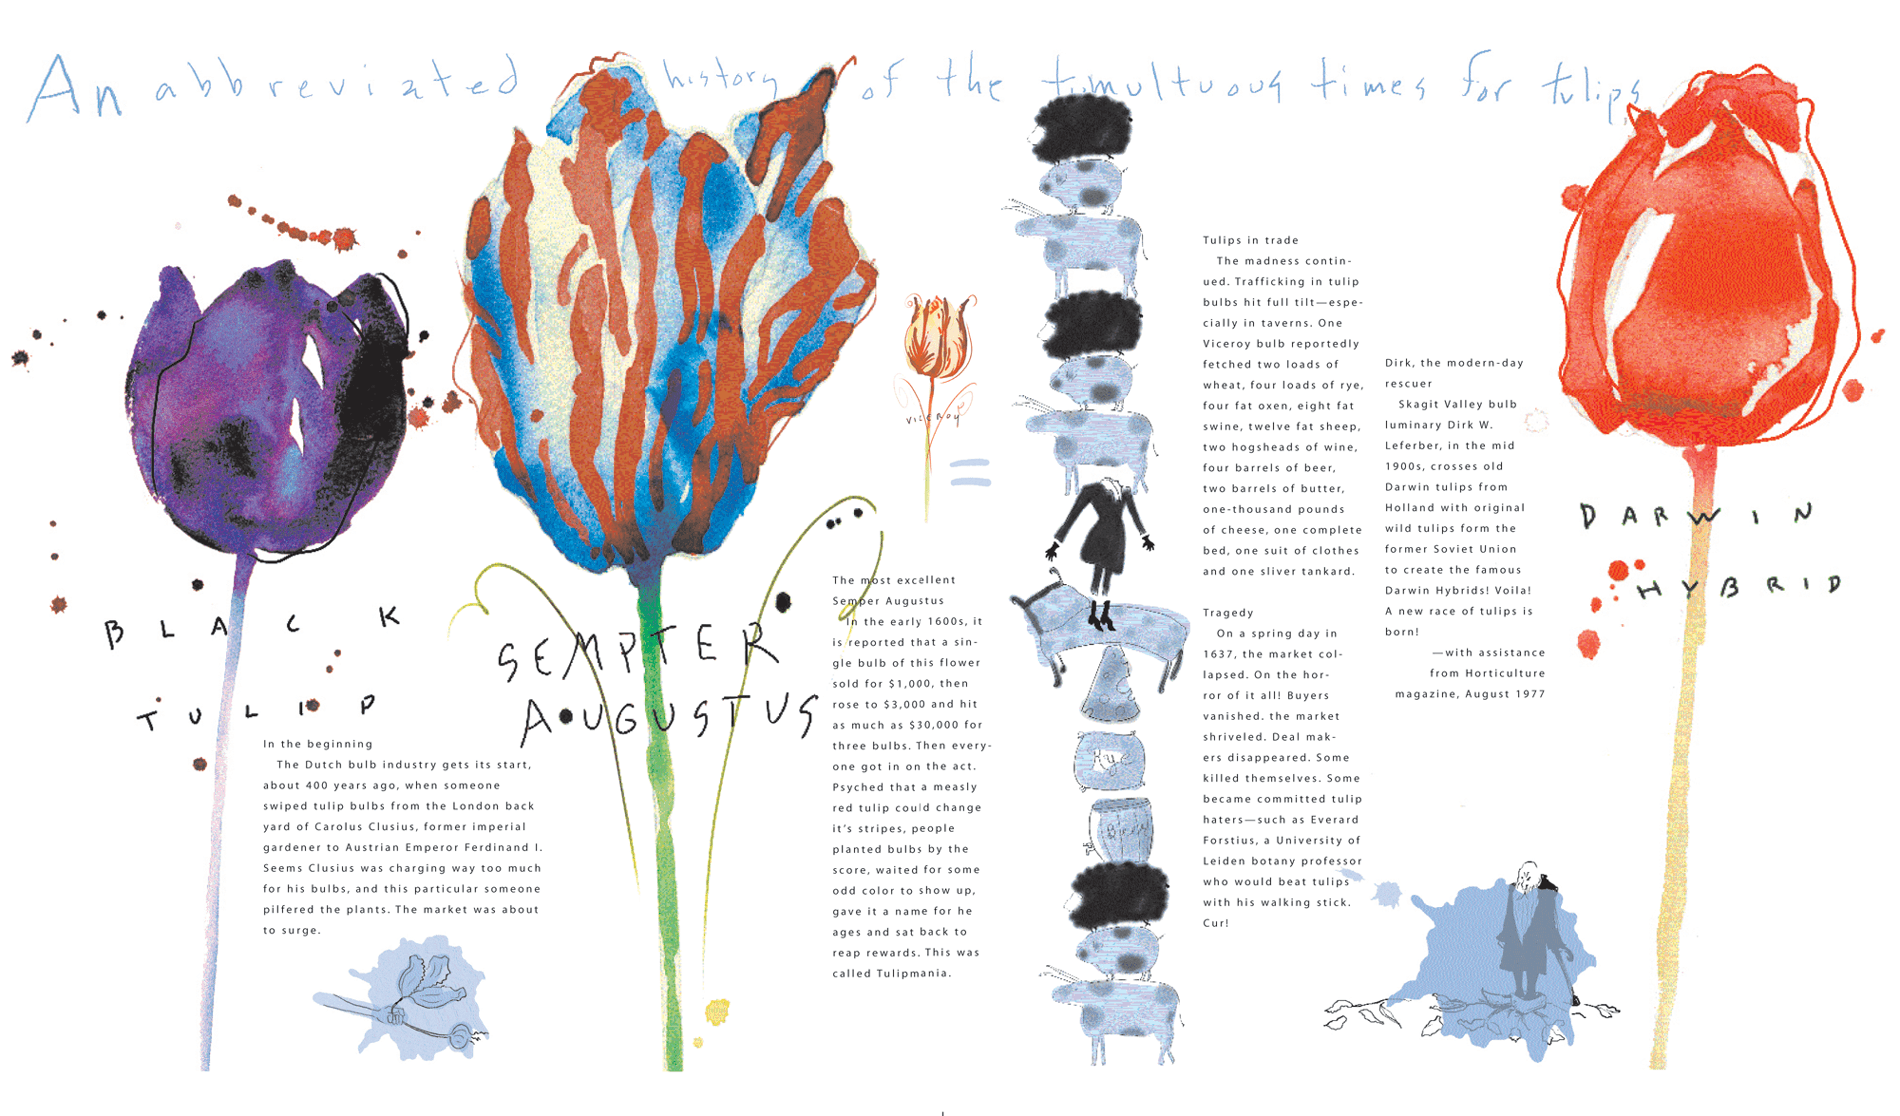 A timeline of tulip debauchery. Best to have some fun with this info.